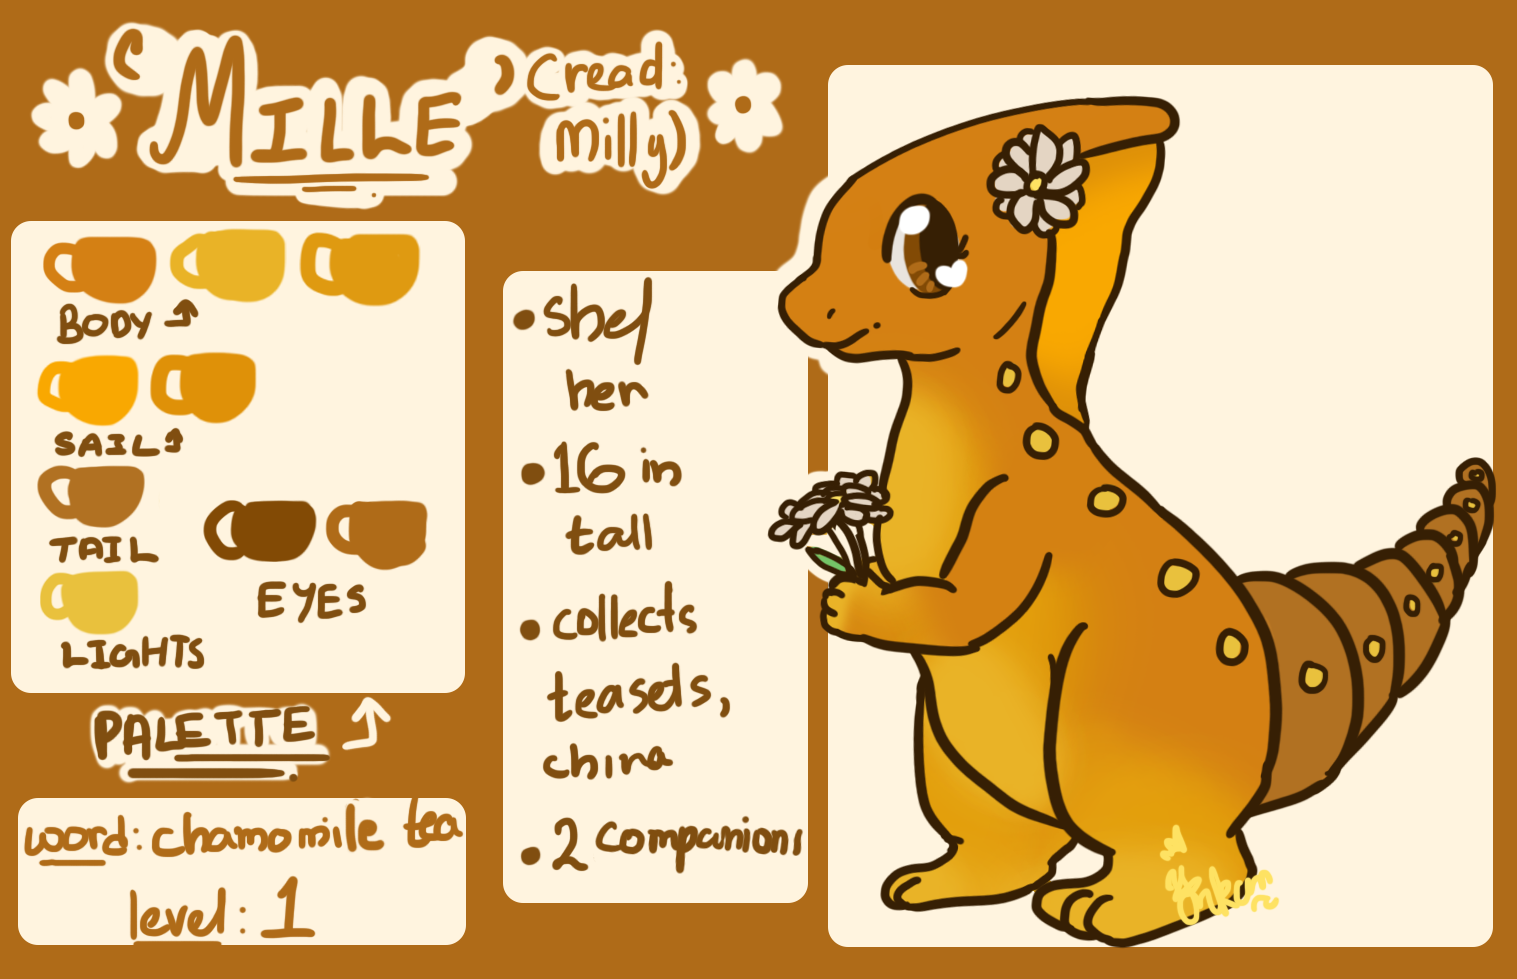 Reference: Mille [Tier 1]